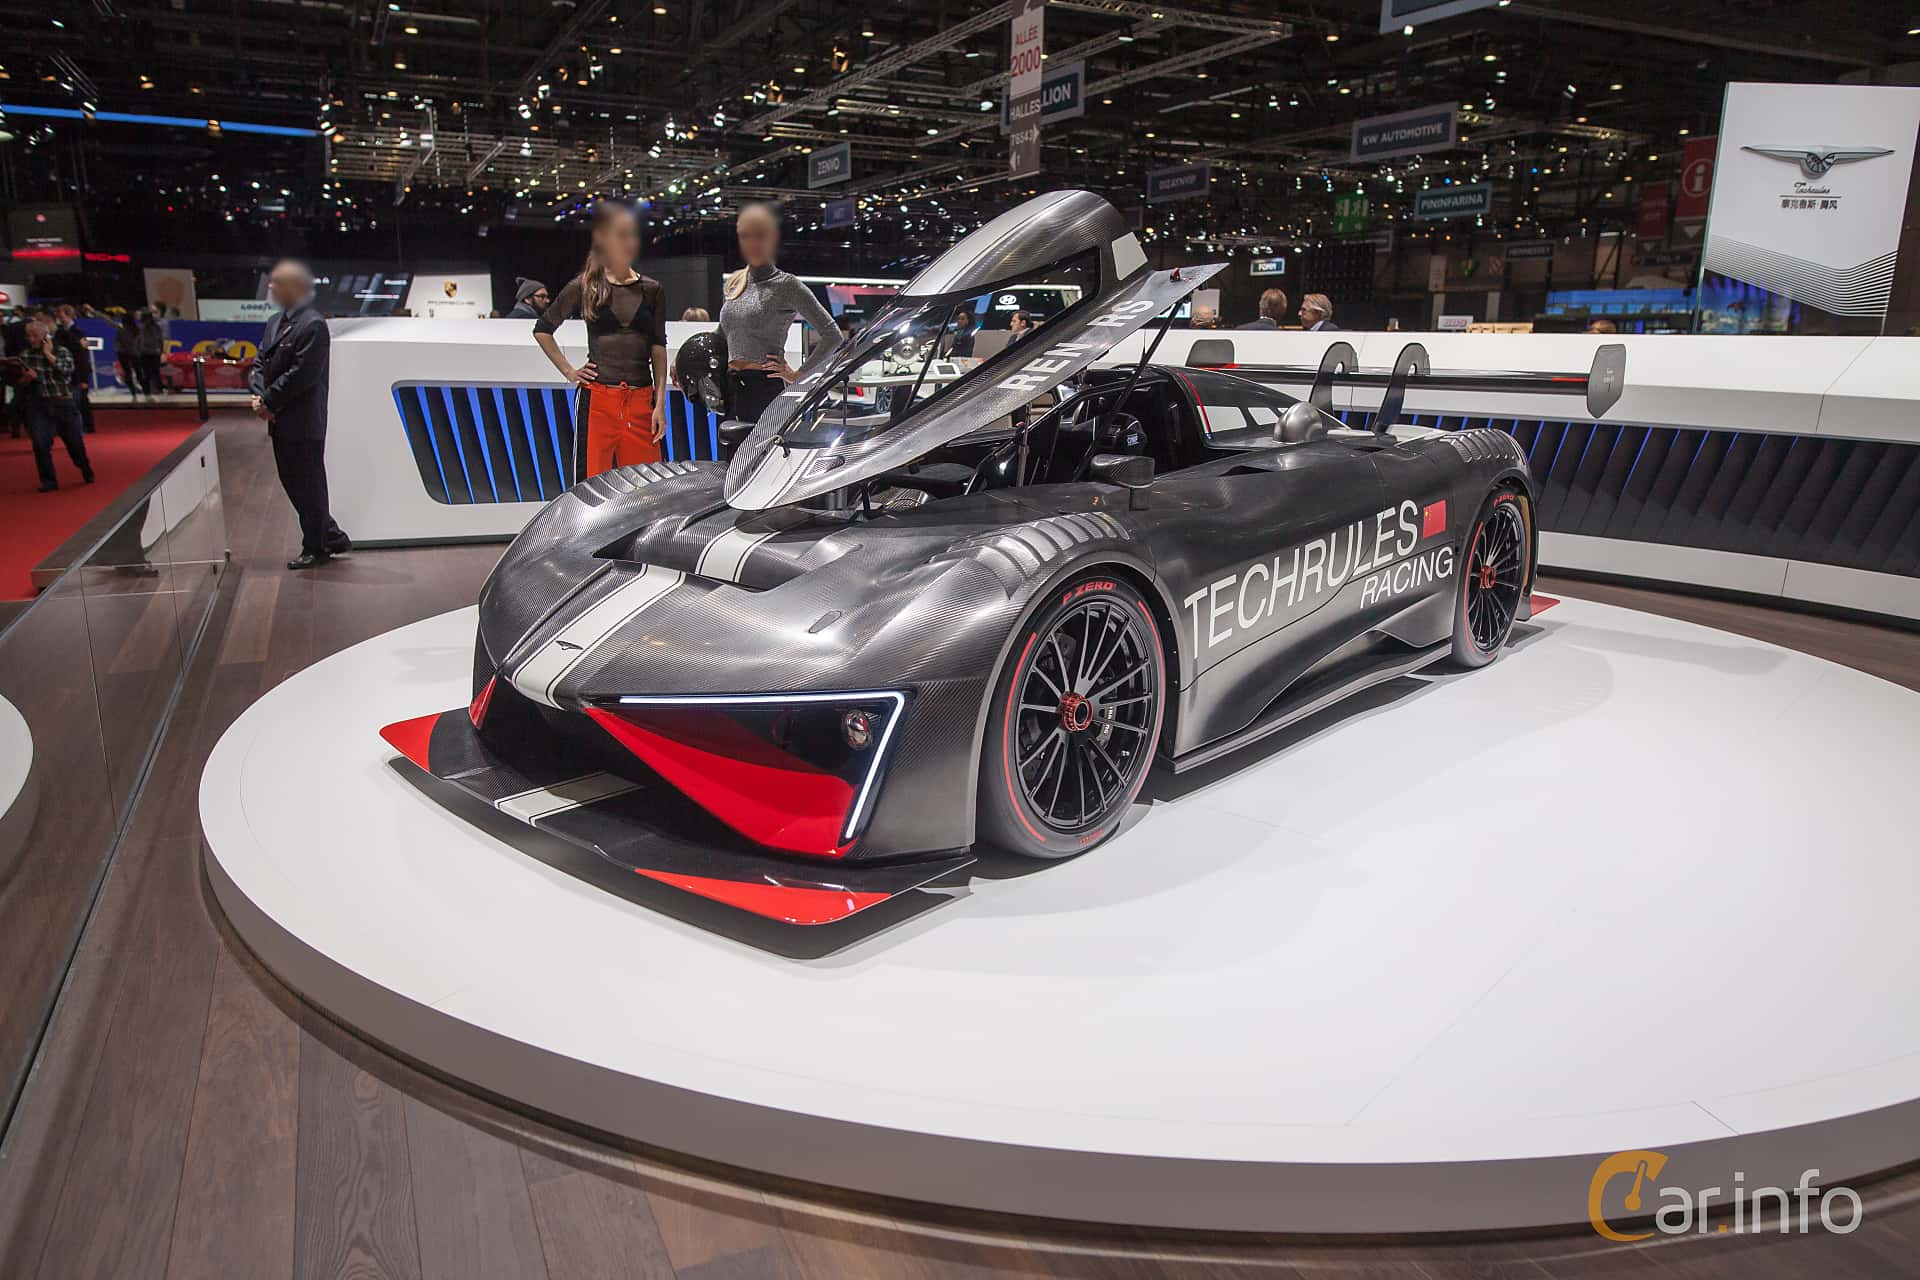 Techrules Ren RS 28.4 kWh Single Speed, 1303hp, 2018 at Geneva Motor Show 2018